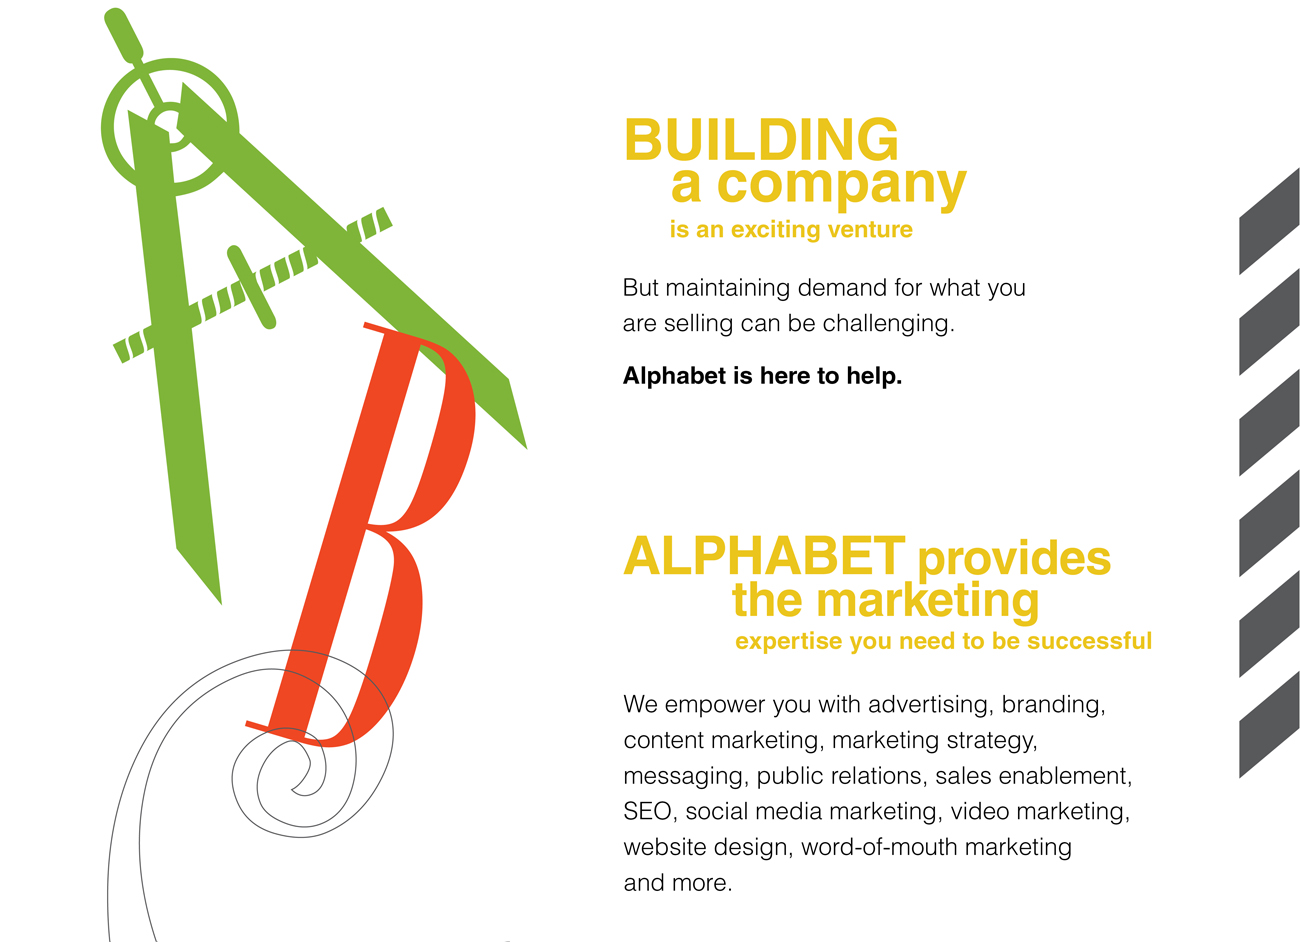 Building a Company is an Exciting Venture But maintaining demand for what you are selling can be challenging. Alphabet is here to help. ALPHABET Provides the Marketing  Expertise You Need to be Successful We empower you with advertising, branding, content marketing, marketing strategy, messaging, public relations, sales enablement, SEO, social media marketing, video marketing, website design, word-of-mouth marketing and more.